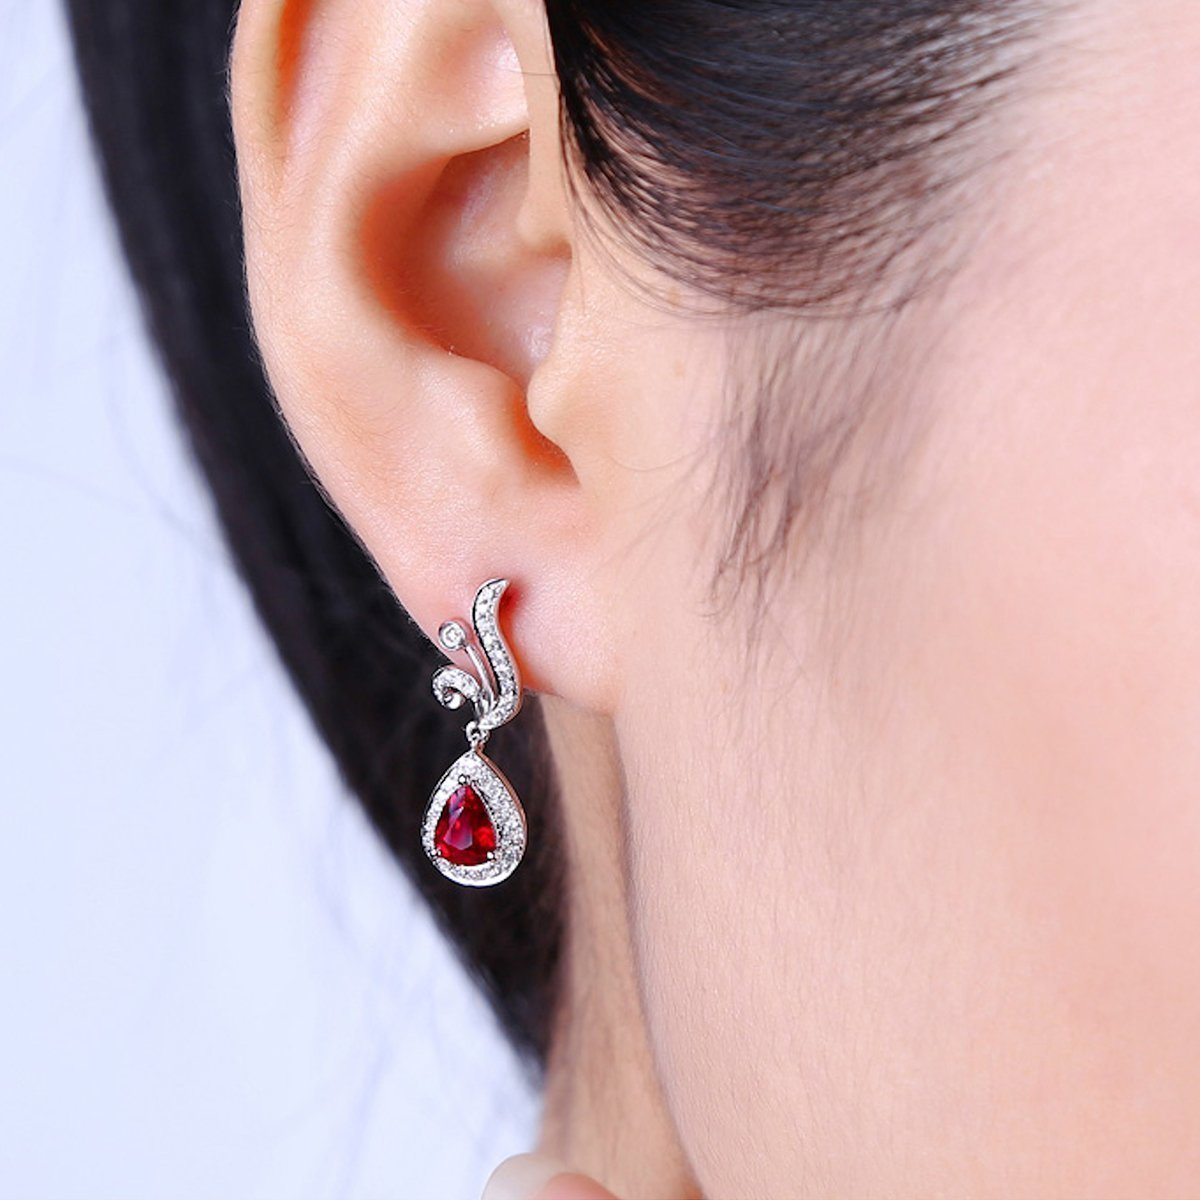 Pear Cut Ruby Diamond Earrings - 1.0ct Rubies